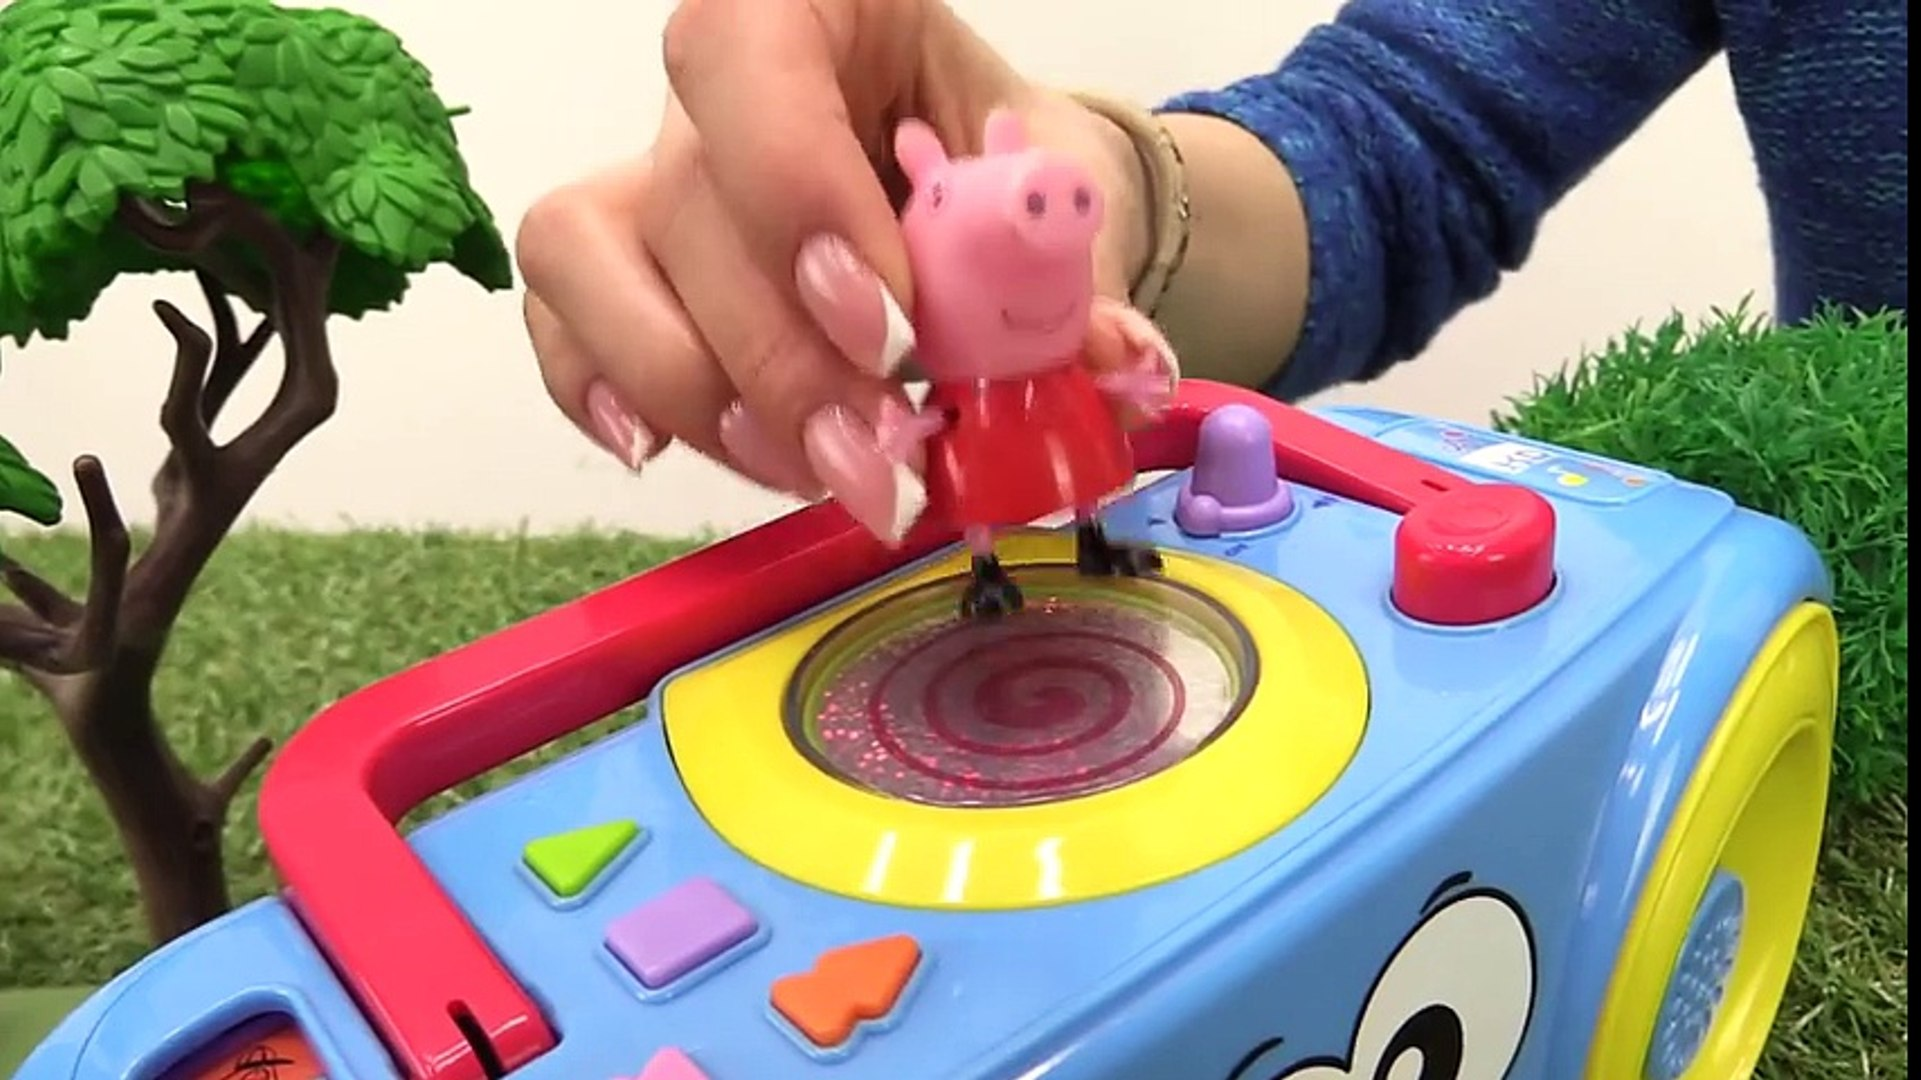 Peppa pig in dangerous  Train videos & Peppa pig toys. Toy story with toy train  and kids ts